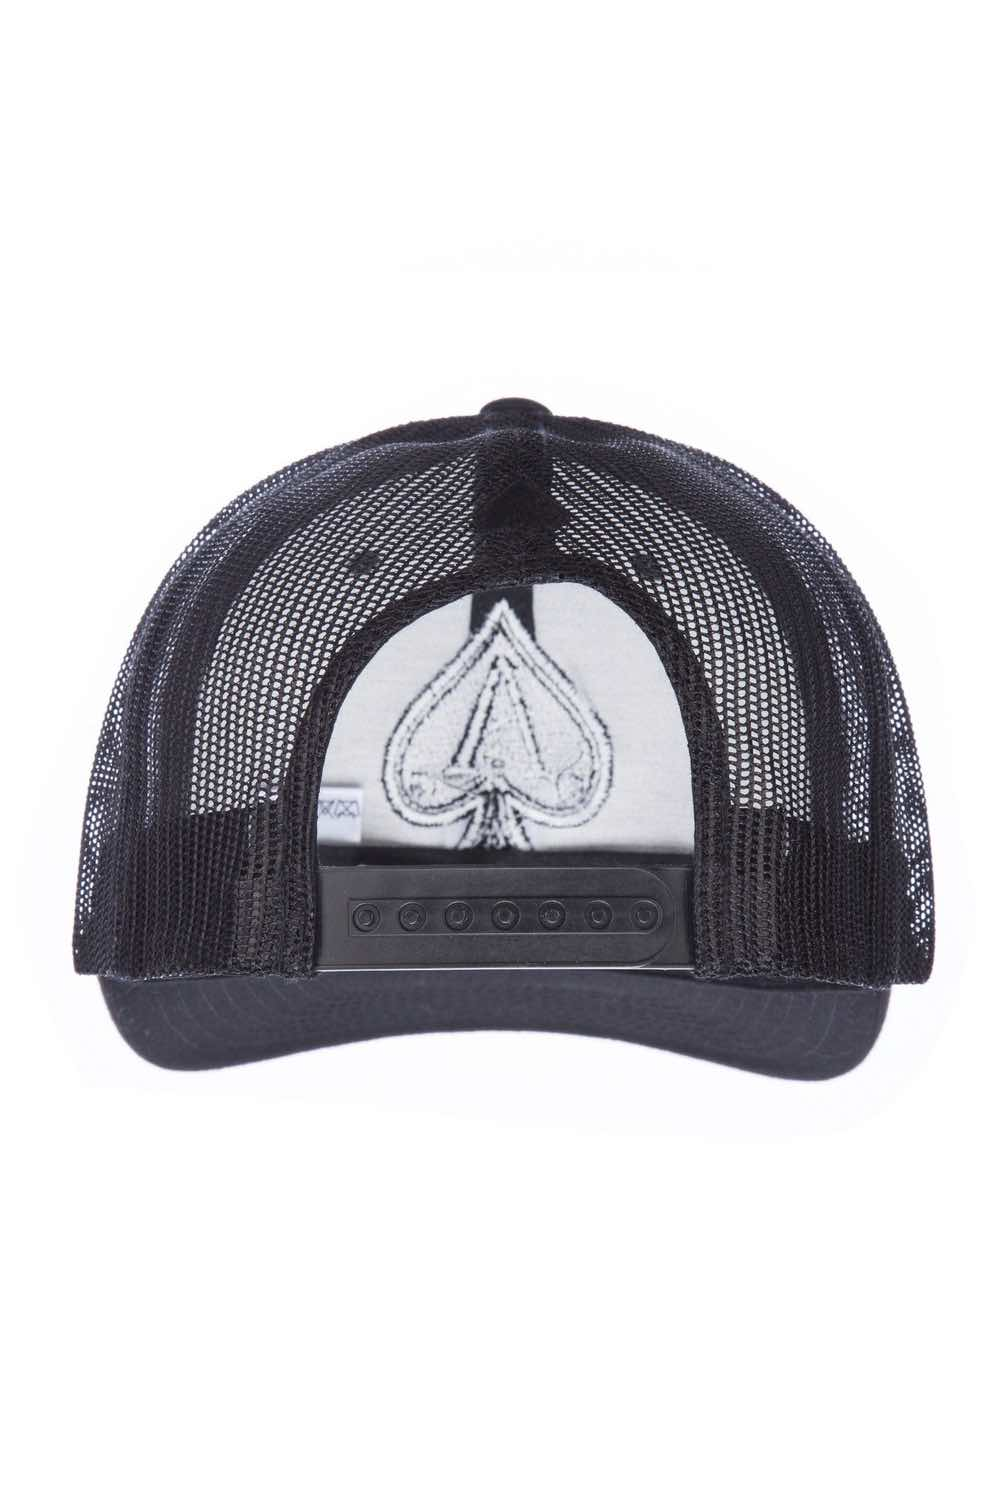 Ace Vestiti Trucker Cap - Black - 3